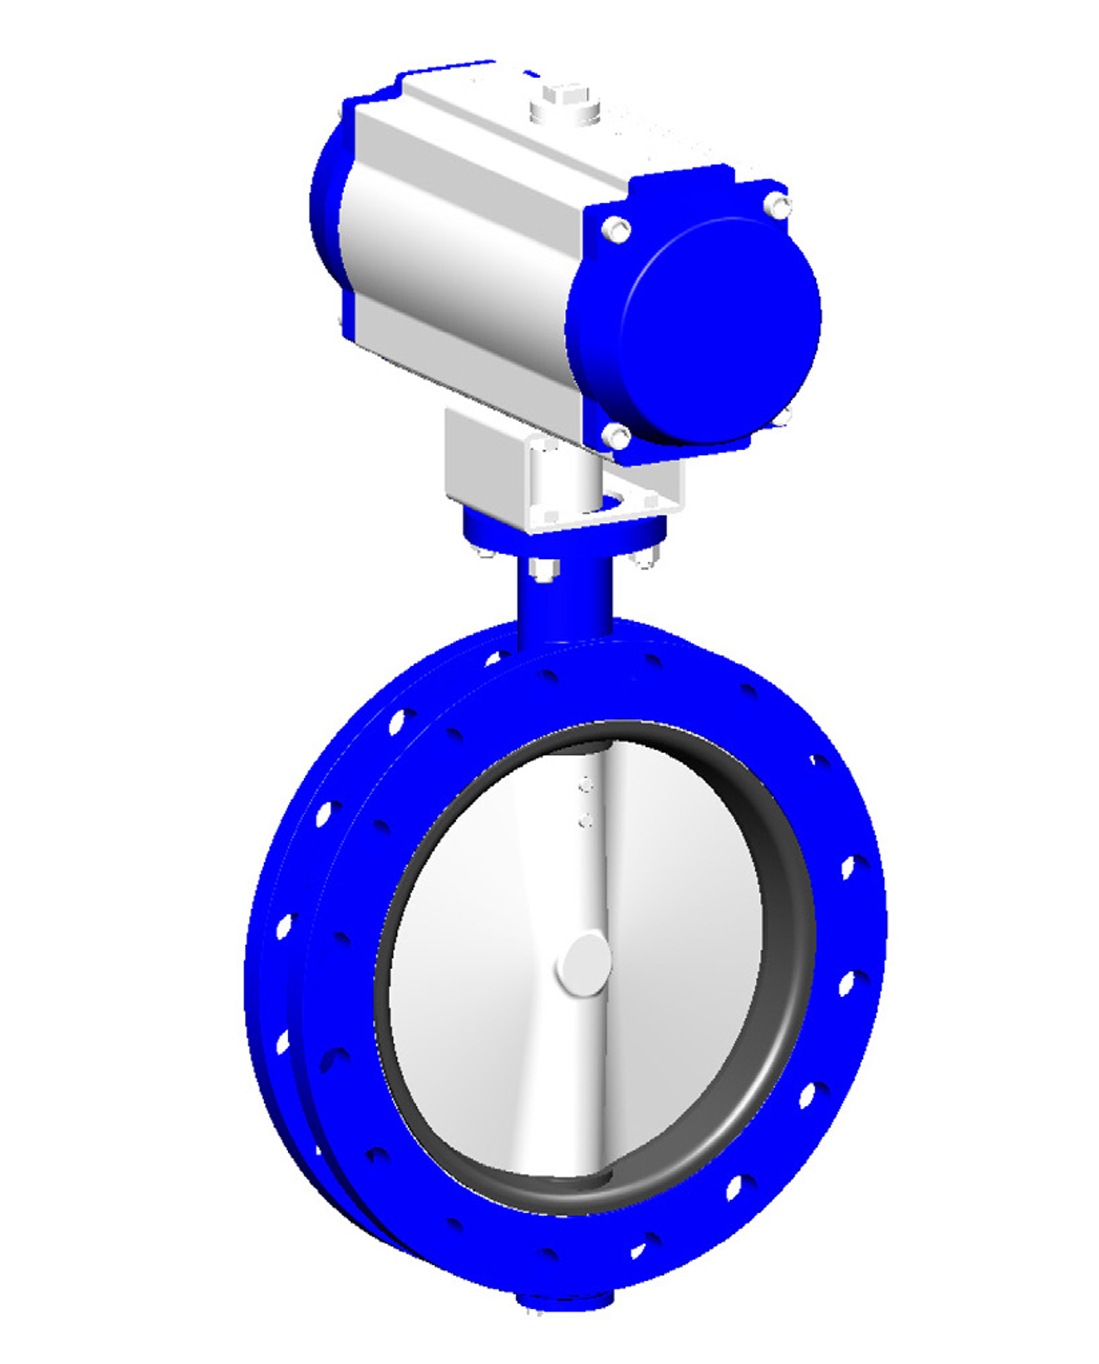 Double flanges type butterfly valve PN16 – ductile iron body – stainless steel disc – single acting pneumatic operator